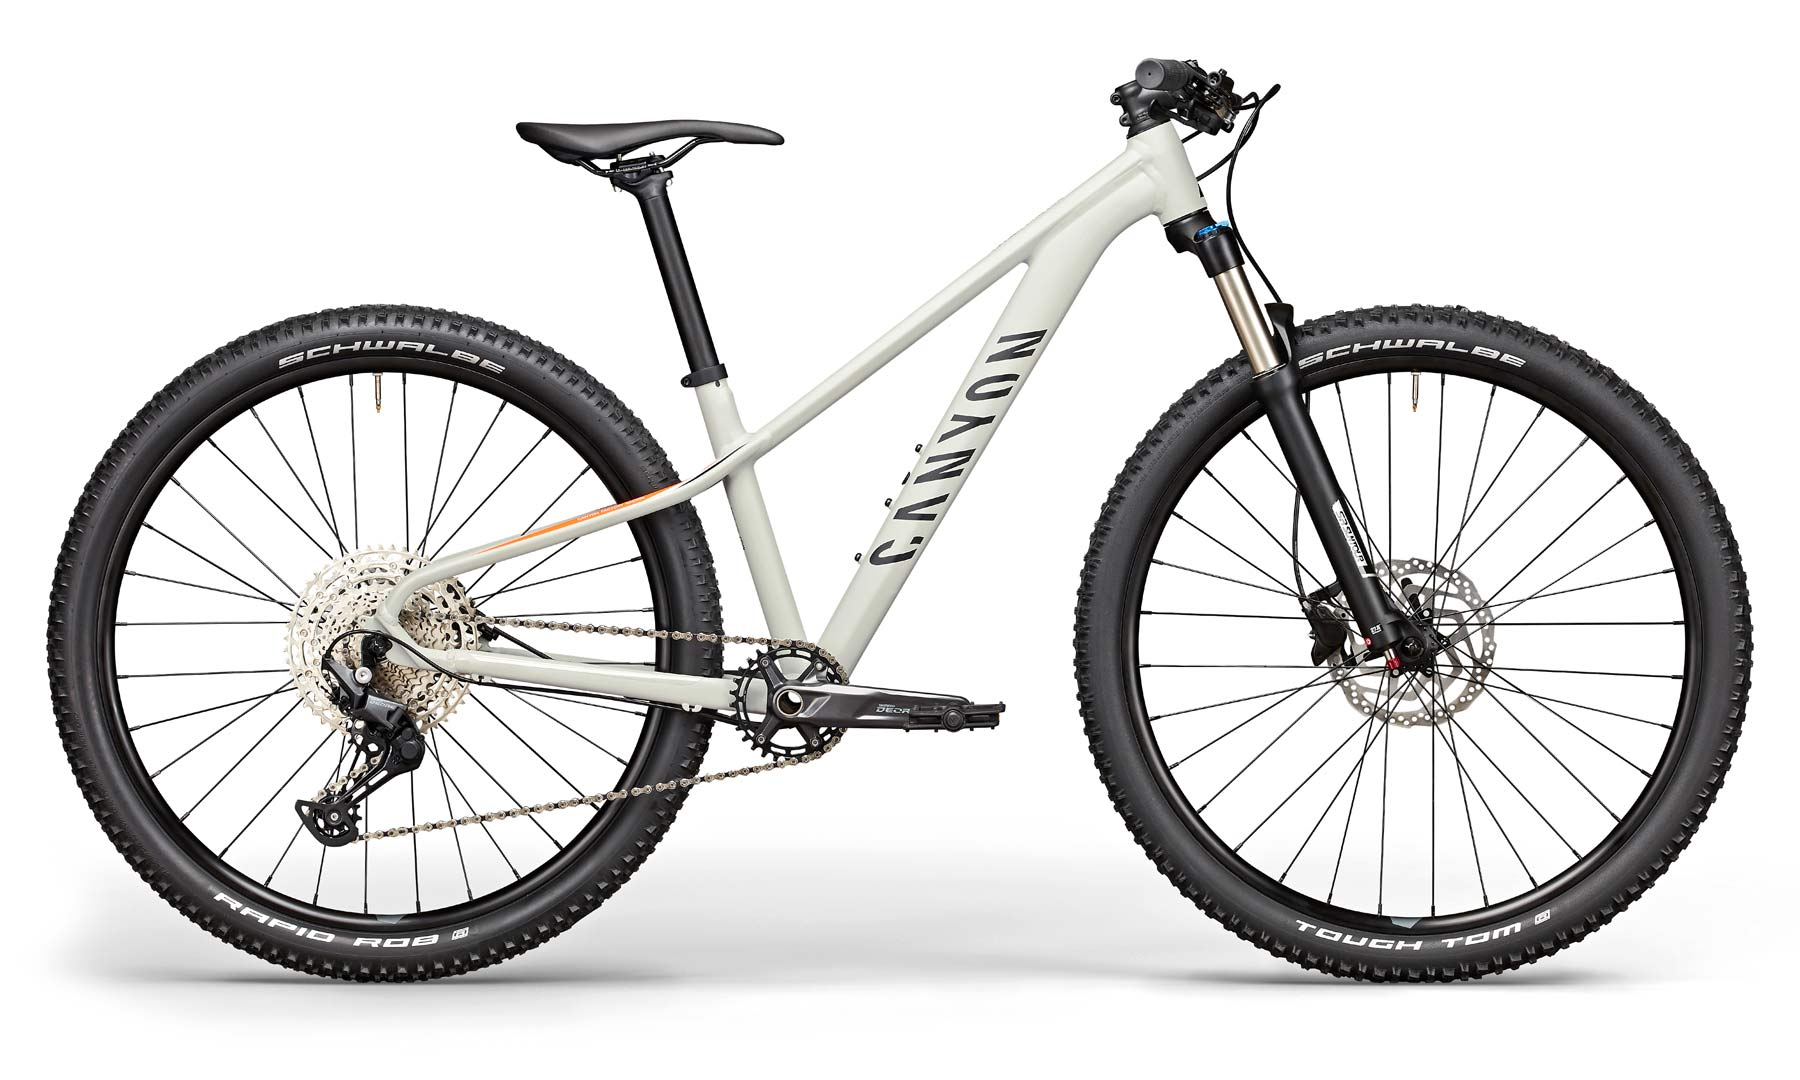 2021 Canyon Grand Canyon alloy MTB hardtail, updated affordable aluminum mountain bike trail hardtails